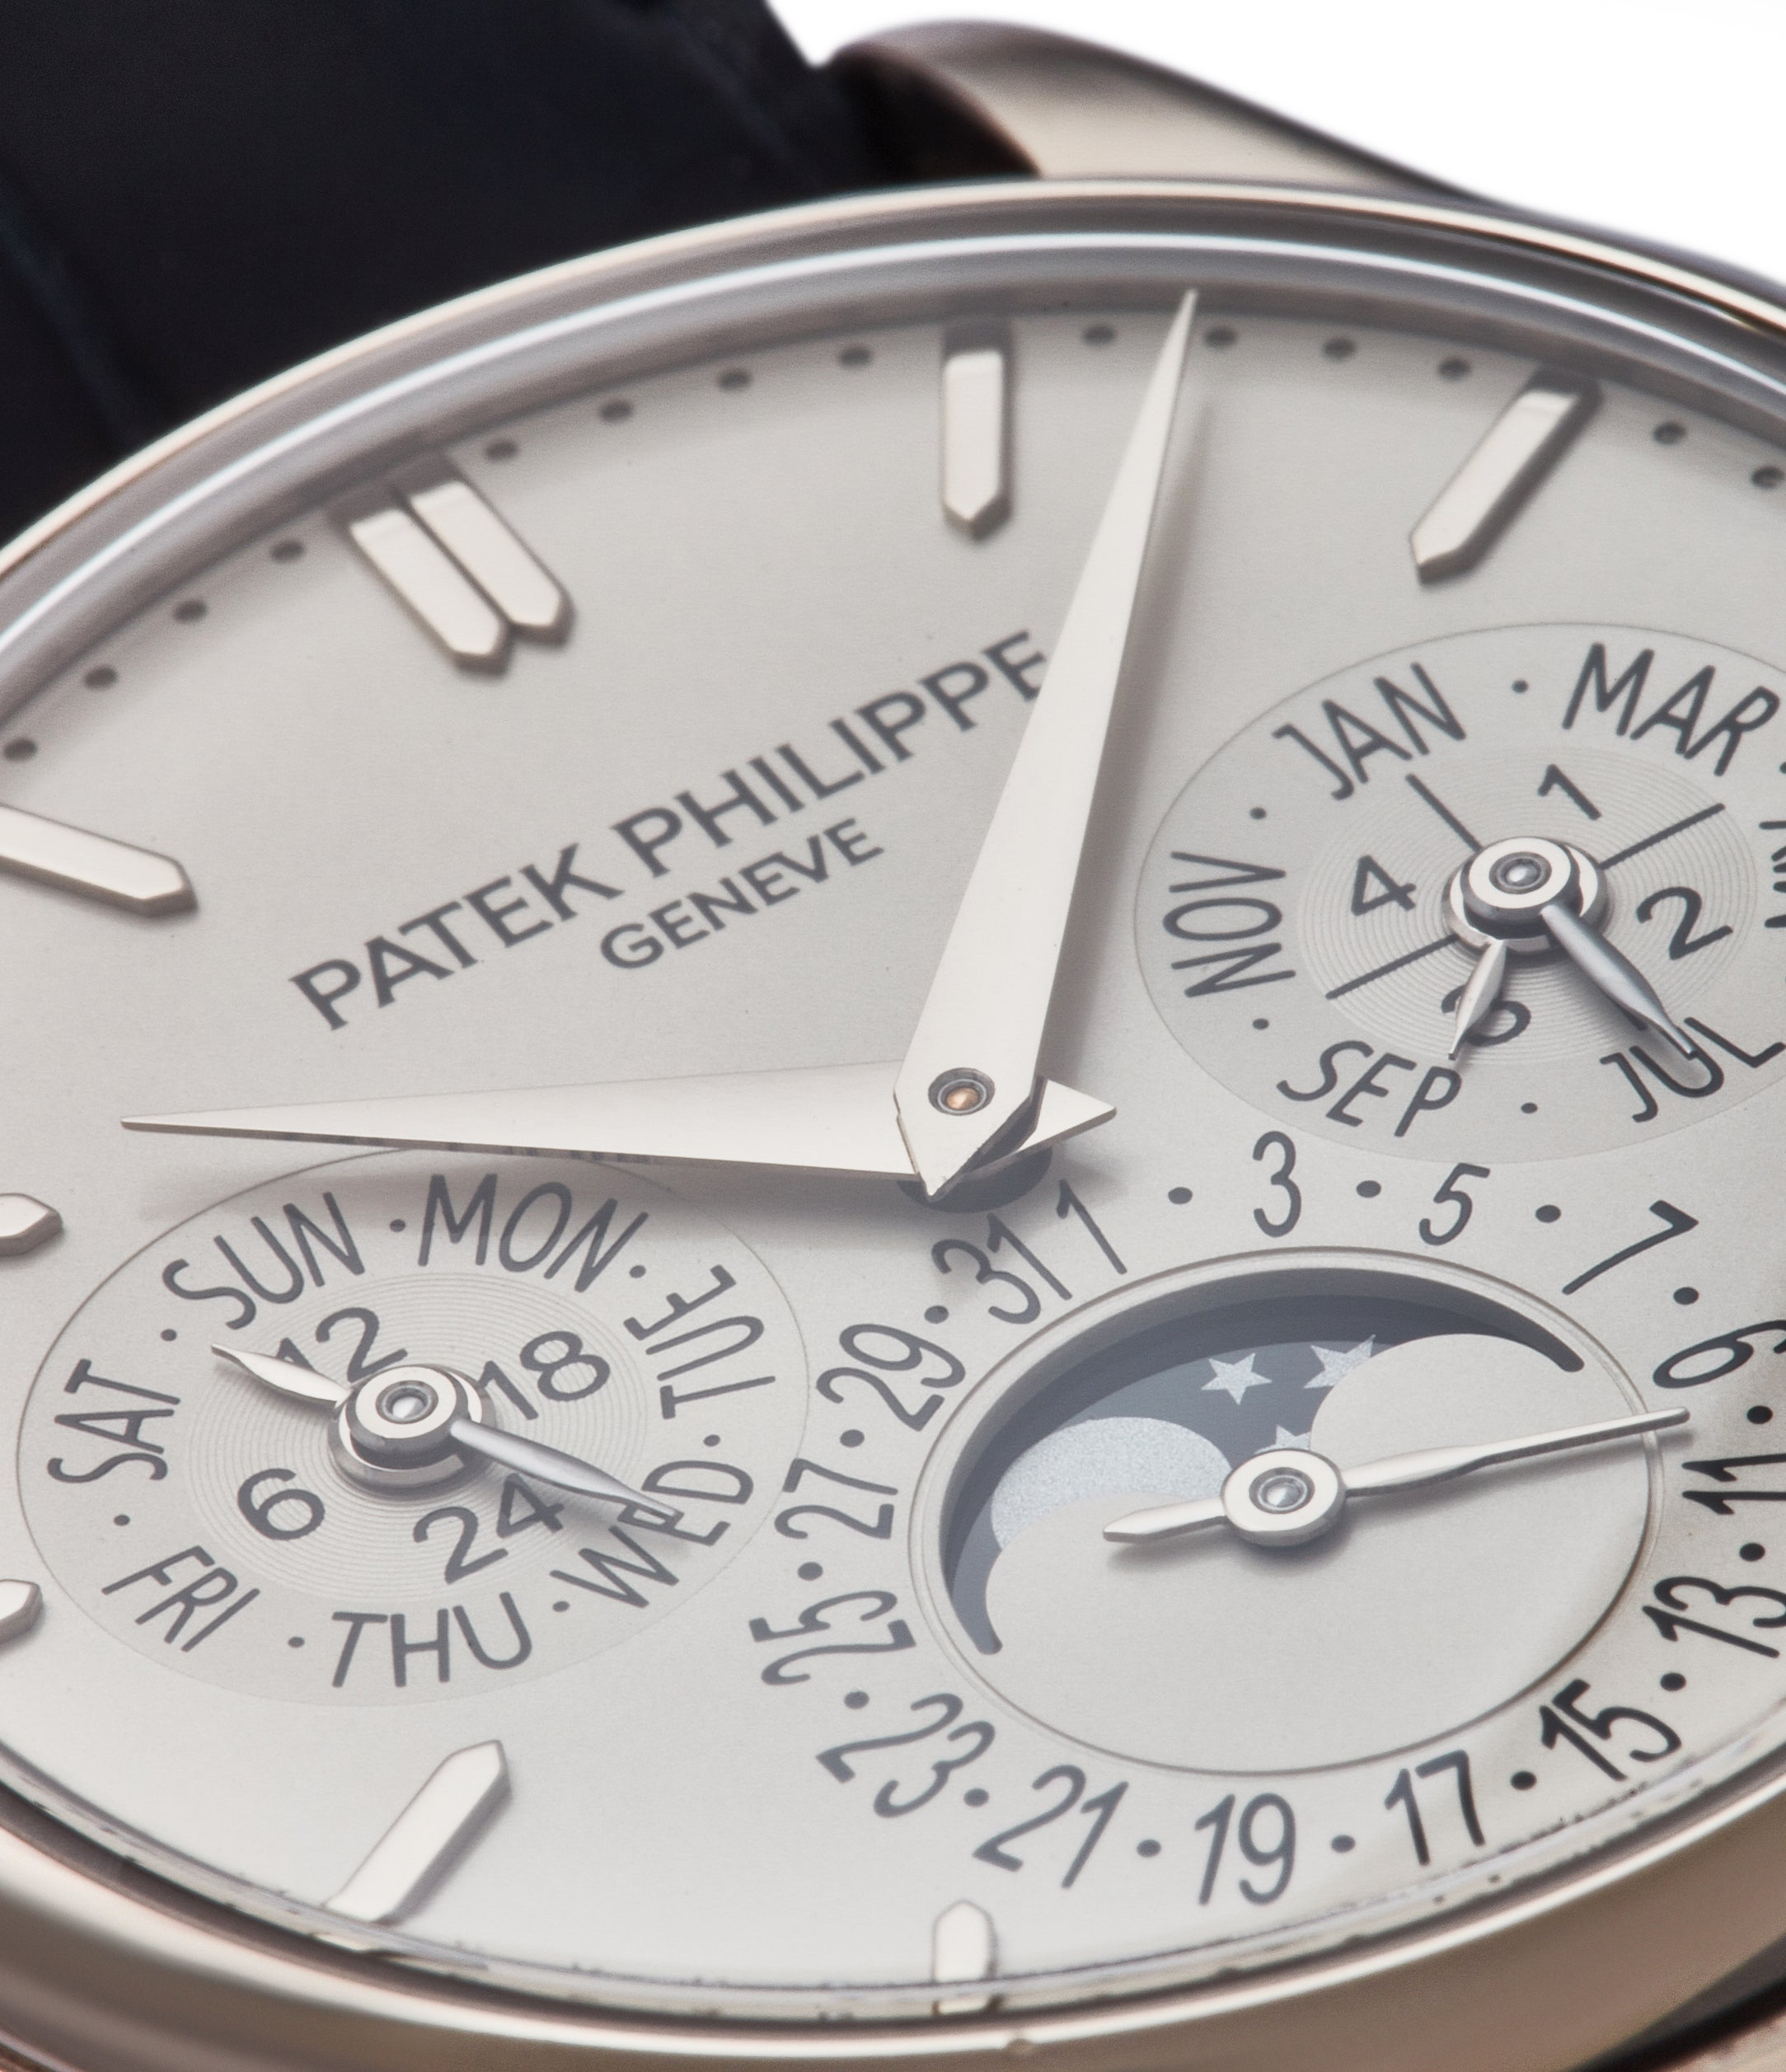 perpetual calendar Patek Philippe 5140G moonphase white gold silver dial pre-owned dress watch for sale online A Collected Man London UK specialist rare watches